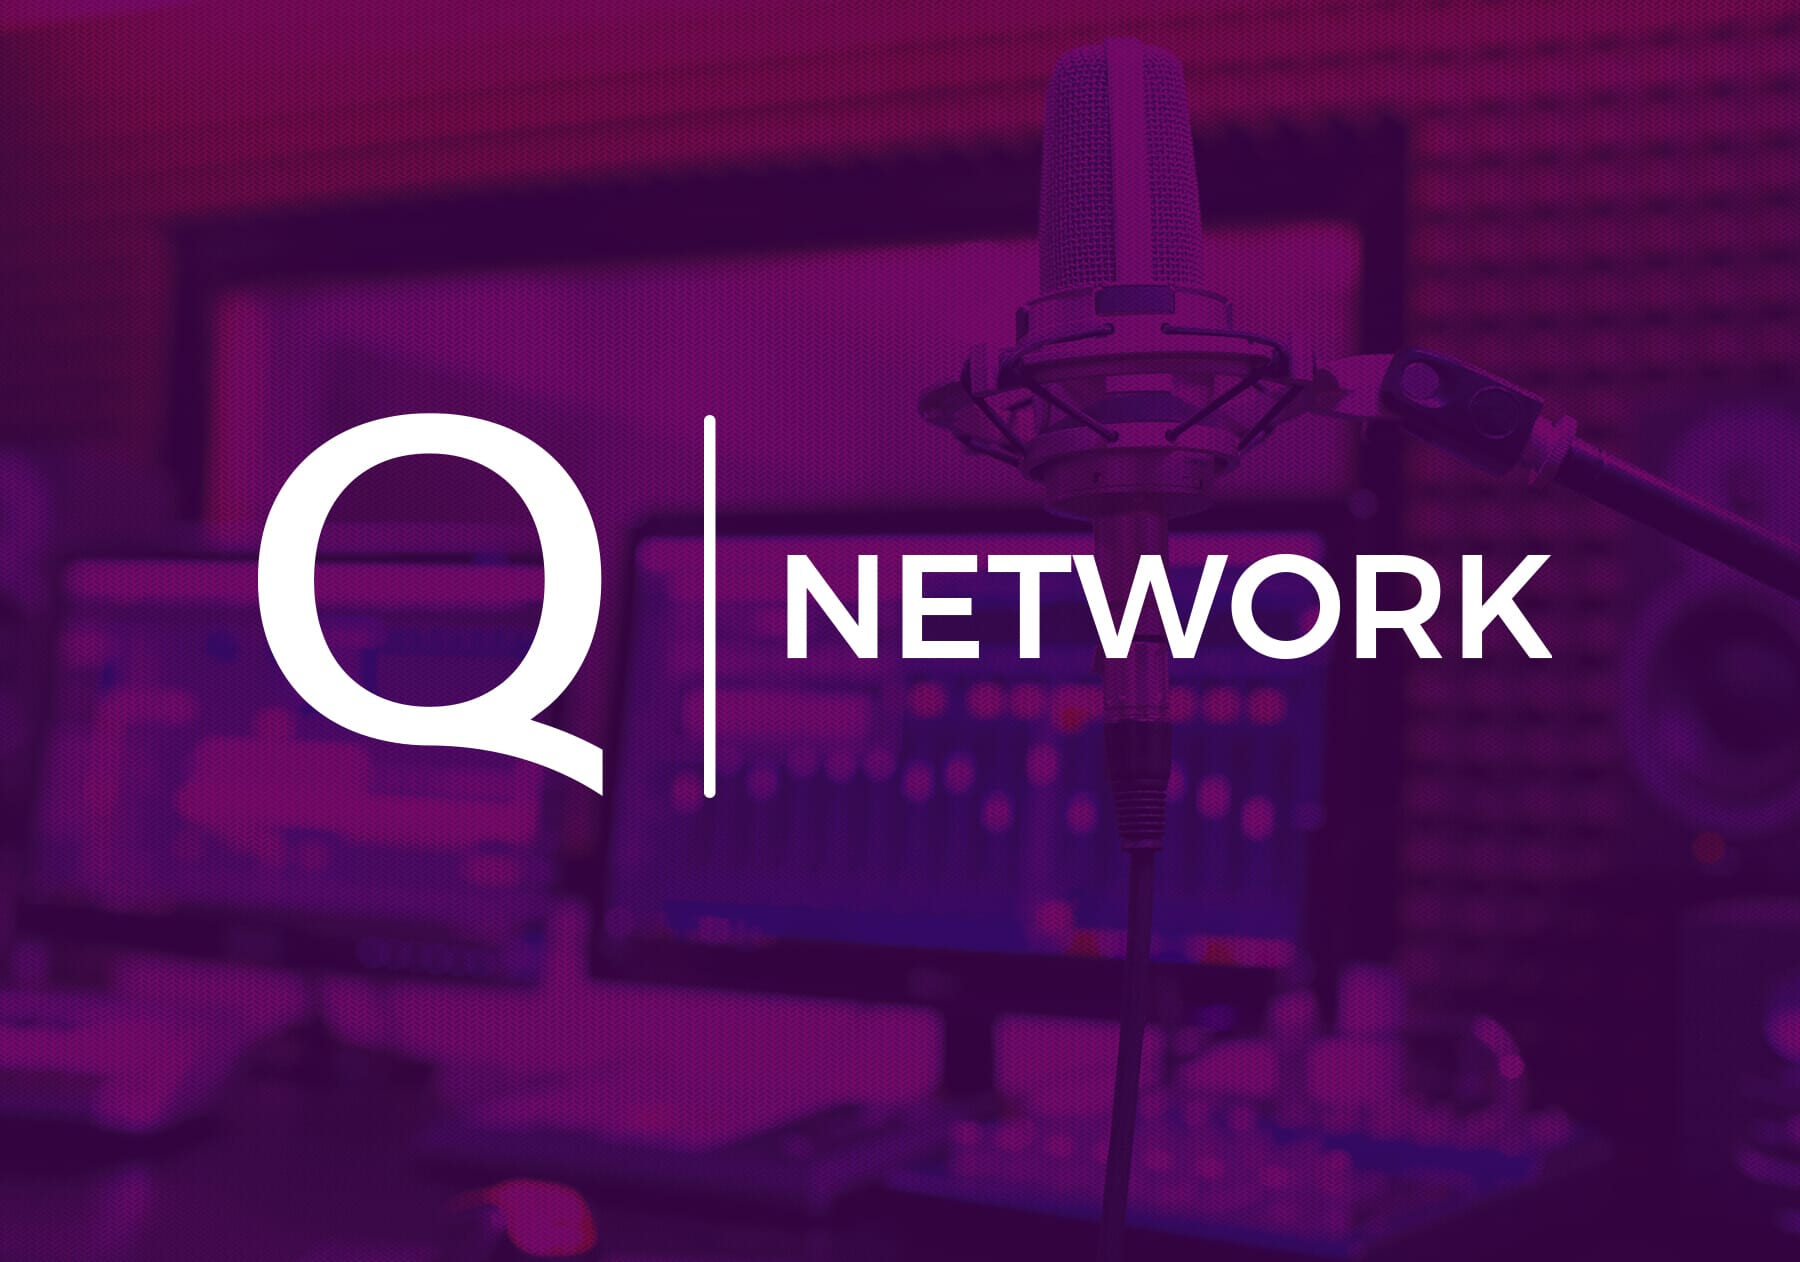 QNetworkrect3